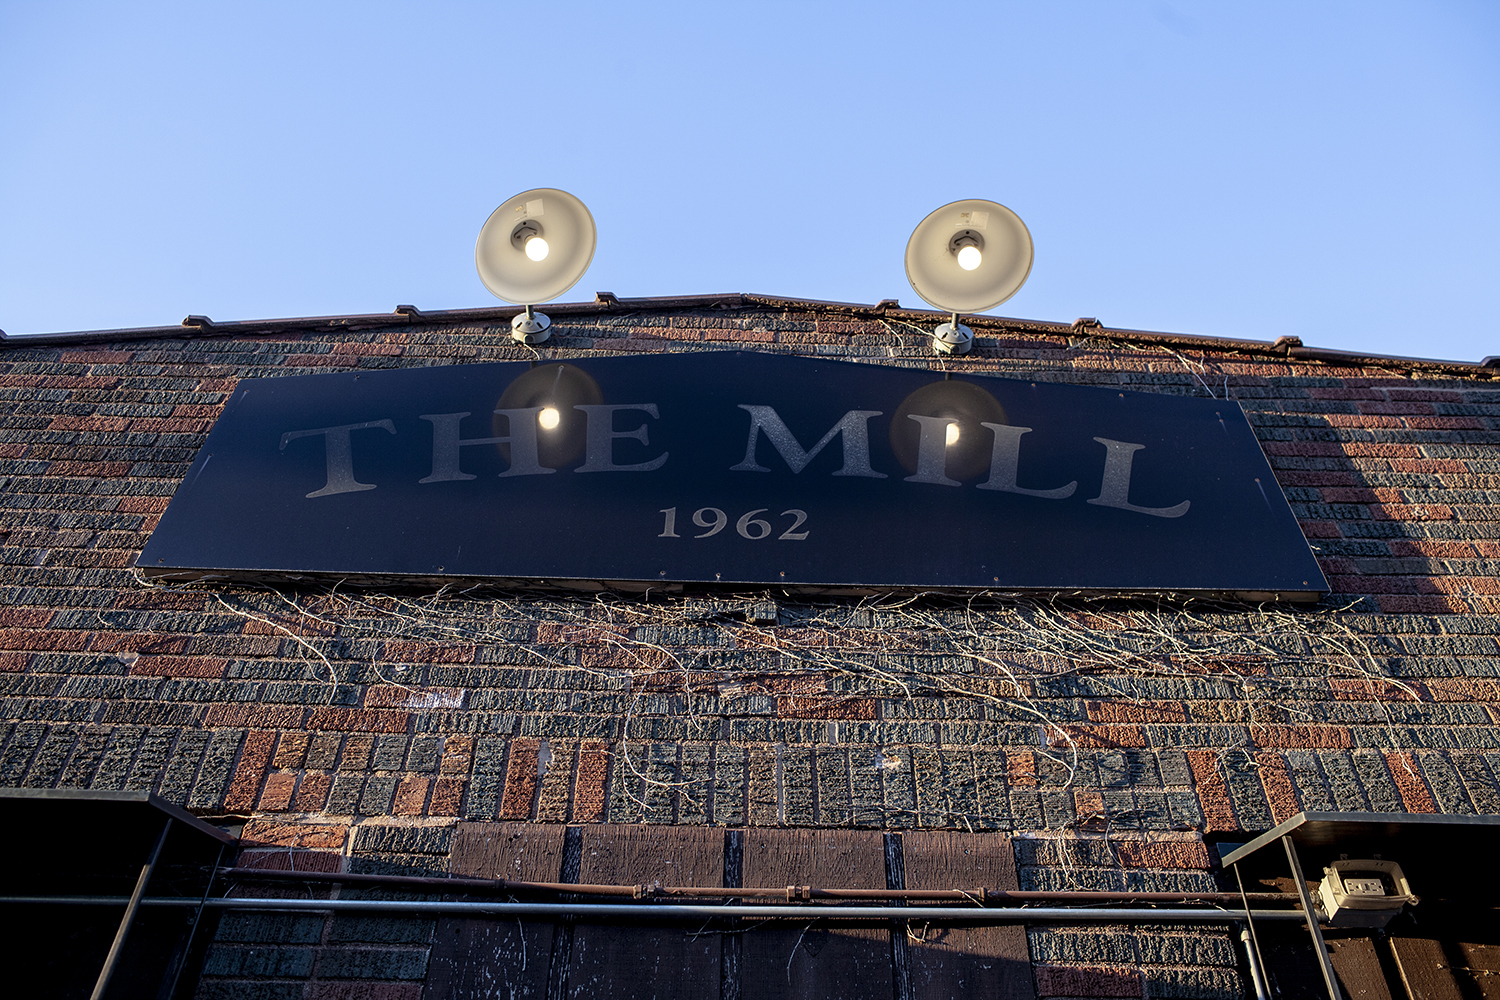 The Mill is seen on Monday, March 11th, 2019